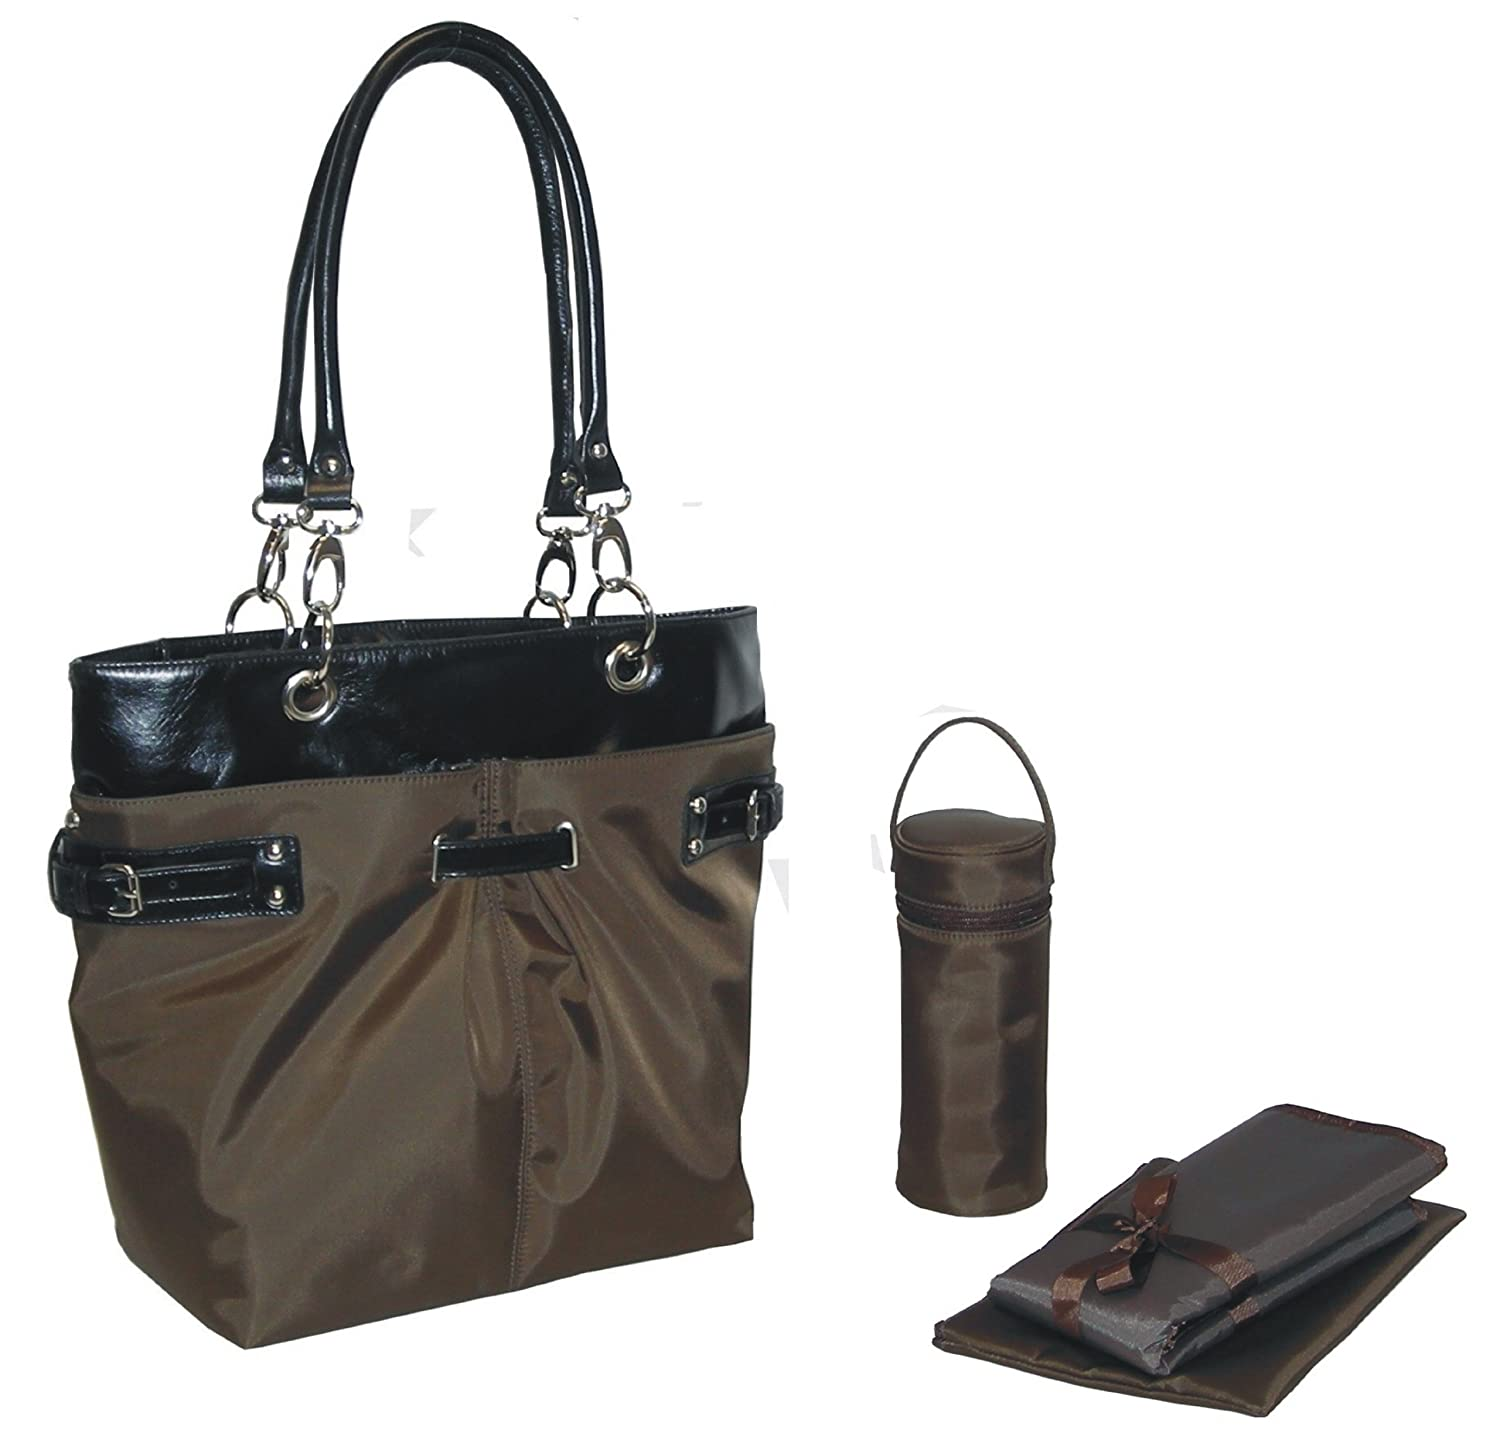 Kalencom Ultimate Midi Tote, Chocolate (Discontinued by Manufacturer)